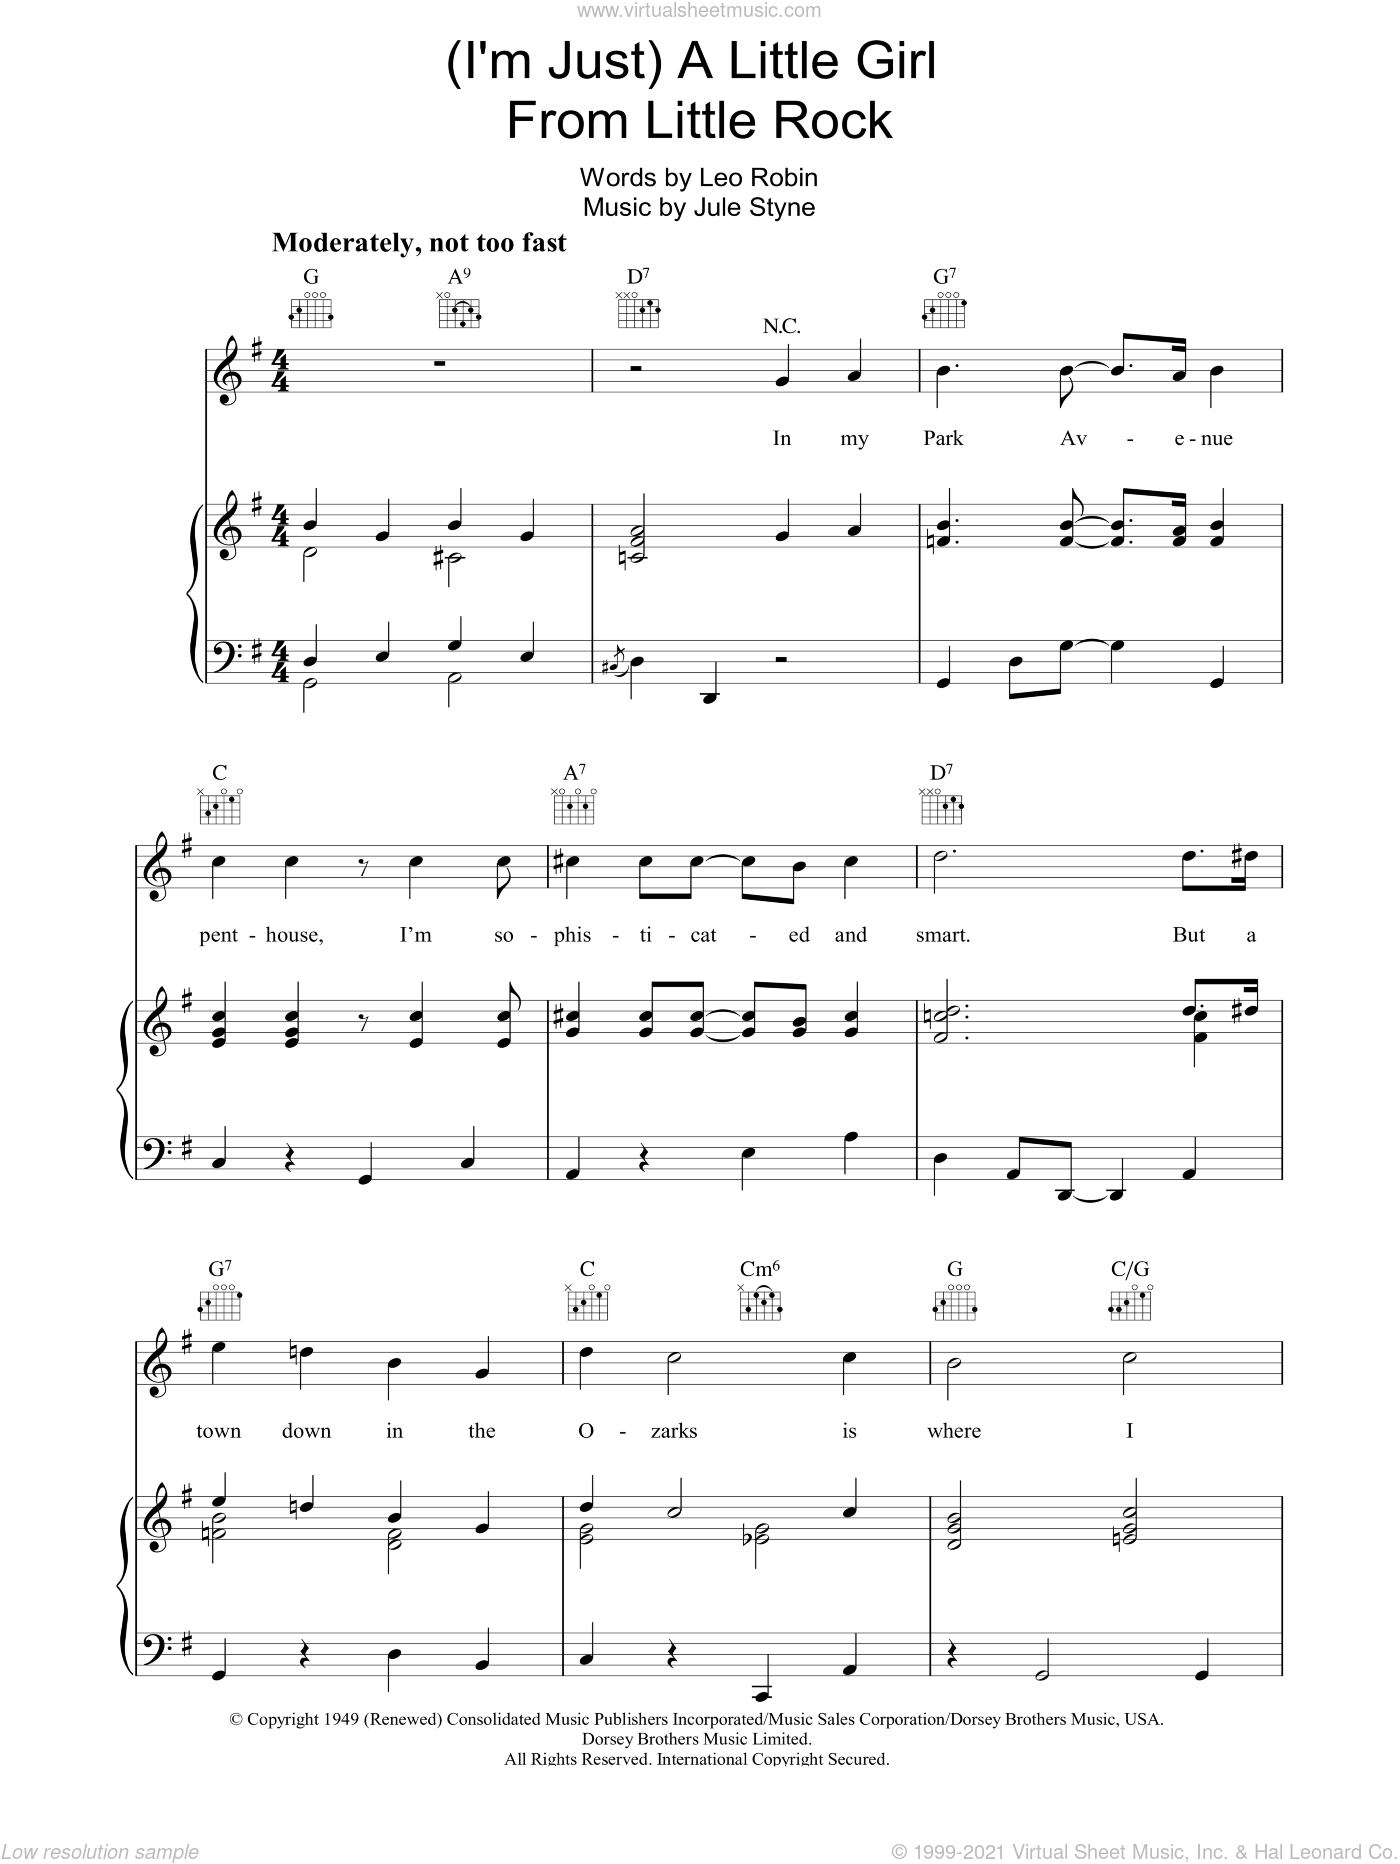 A Little Girl From Little Rock sheet music for voice, piano or guitar by Jule Styne and Leo Robin, intermediate skill level